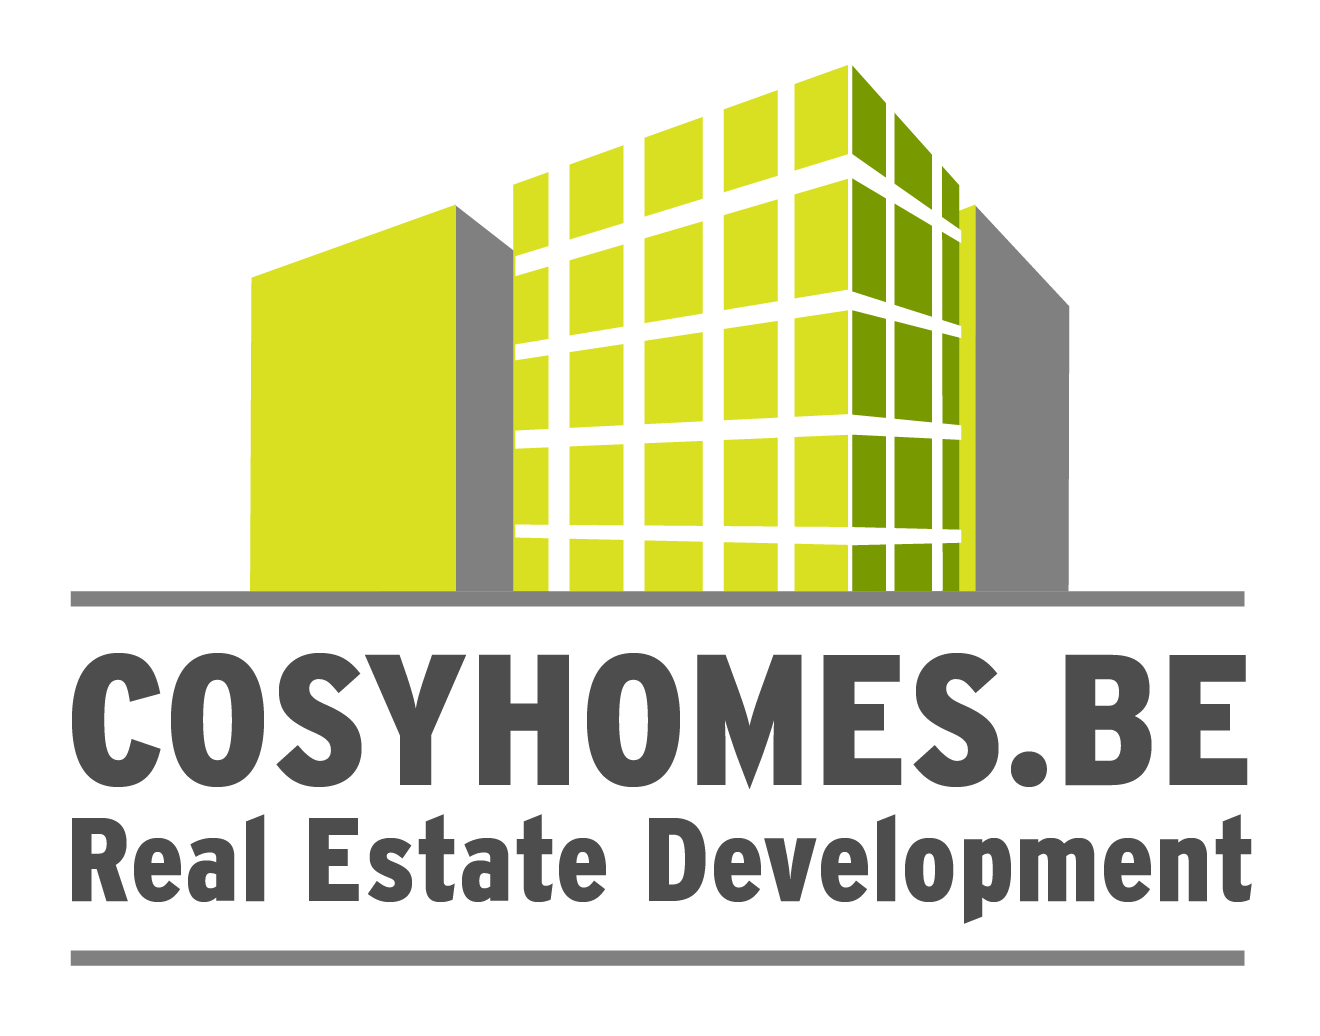 Real Estate & Development